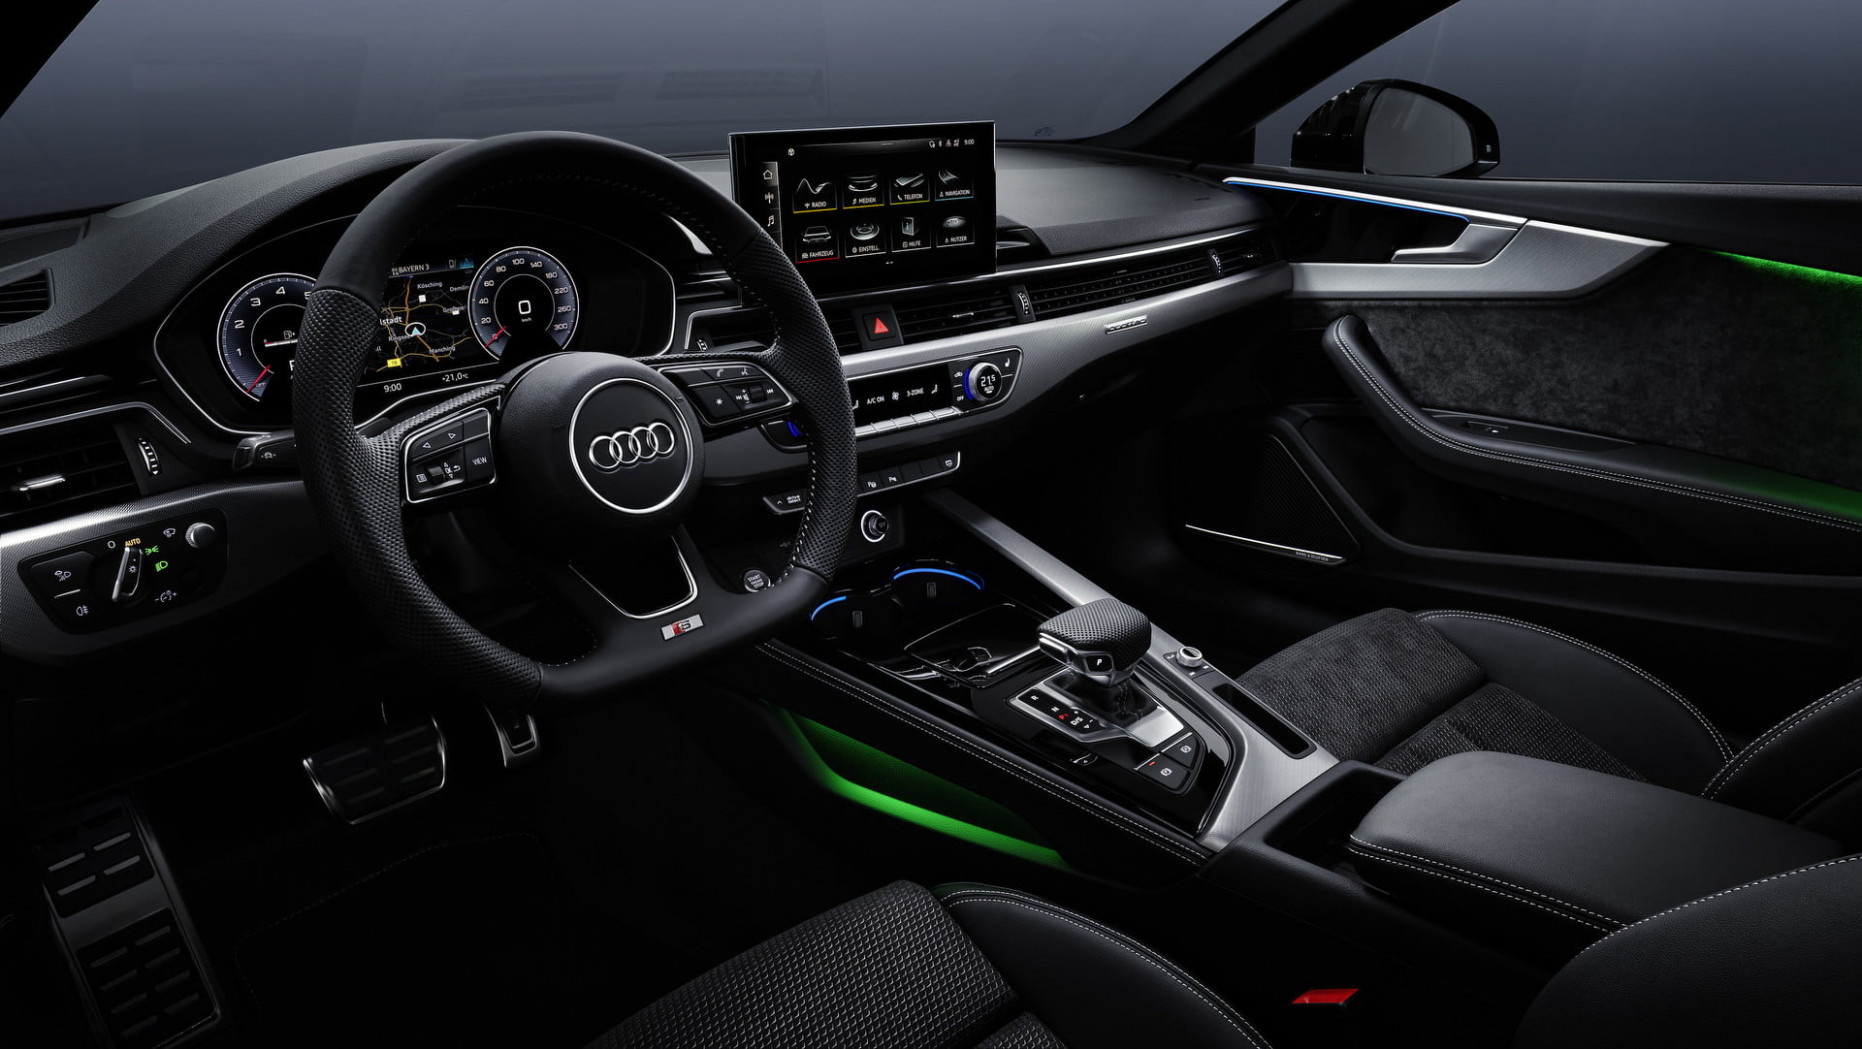 11 Audi A11 Gets Styling and Infotainment Updates | 2020 Audi Dash